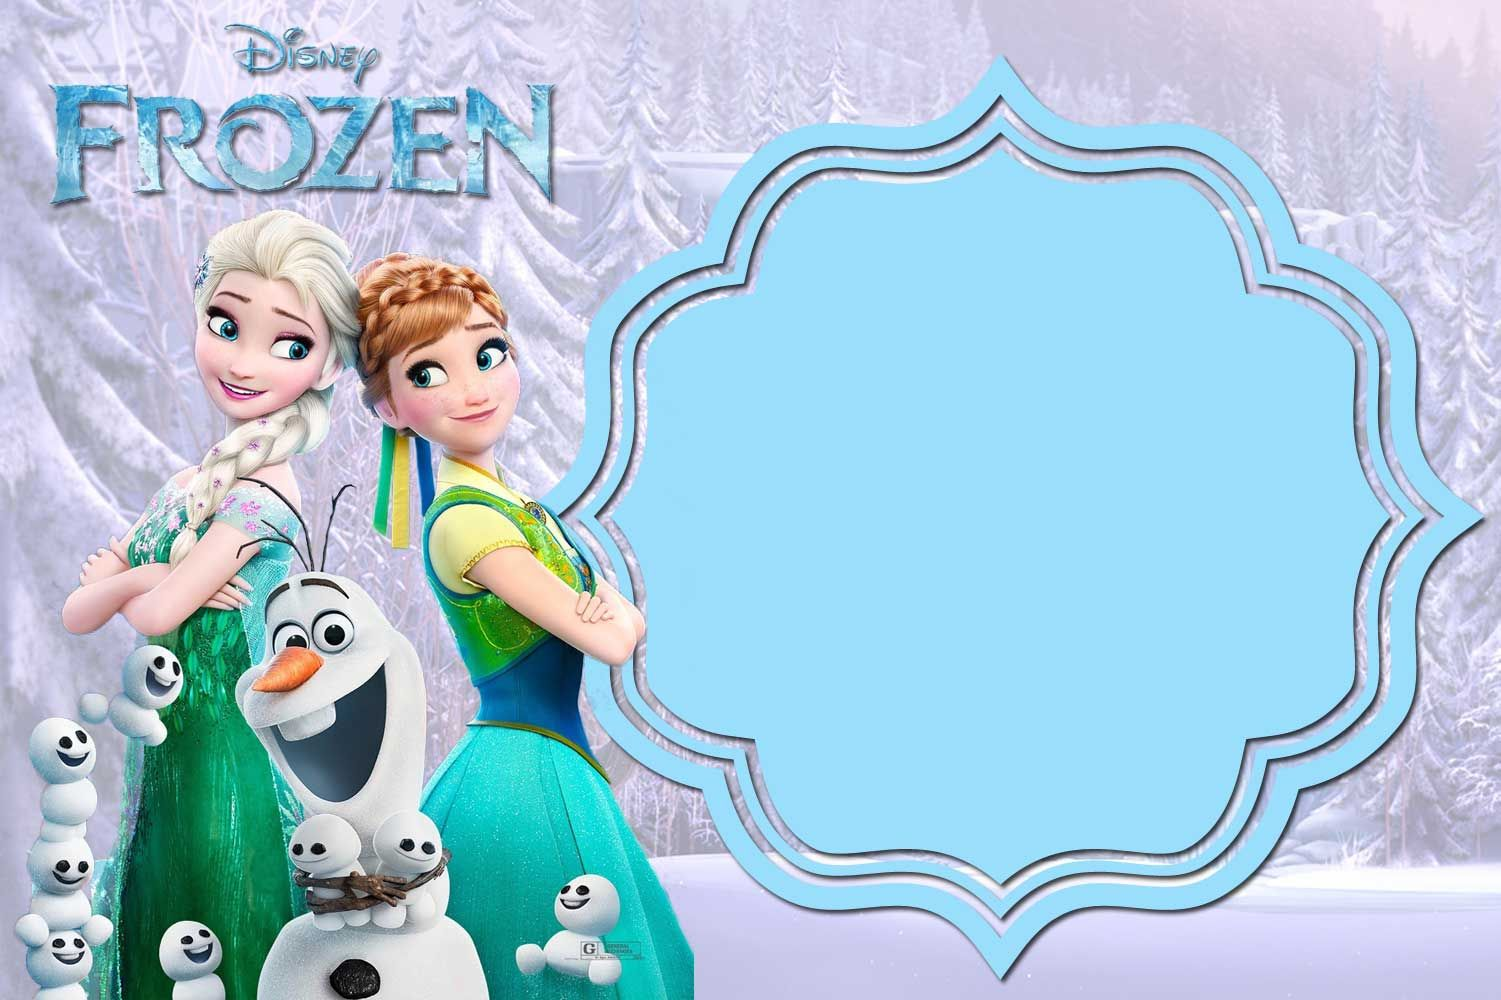 Free Printable Frozen Anna And Elsa Invitation Templates Drevio In 2020 Frozen Invitations Free Birthday Invitation Templates Frozen Birthday Invitations